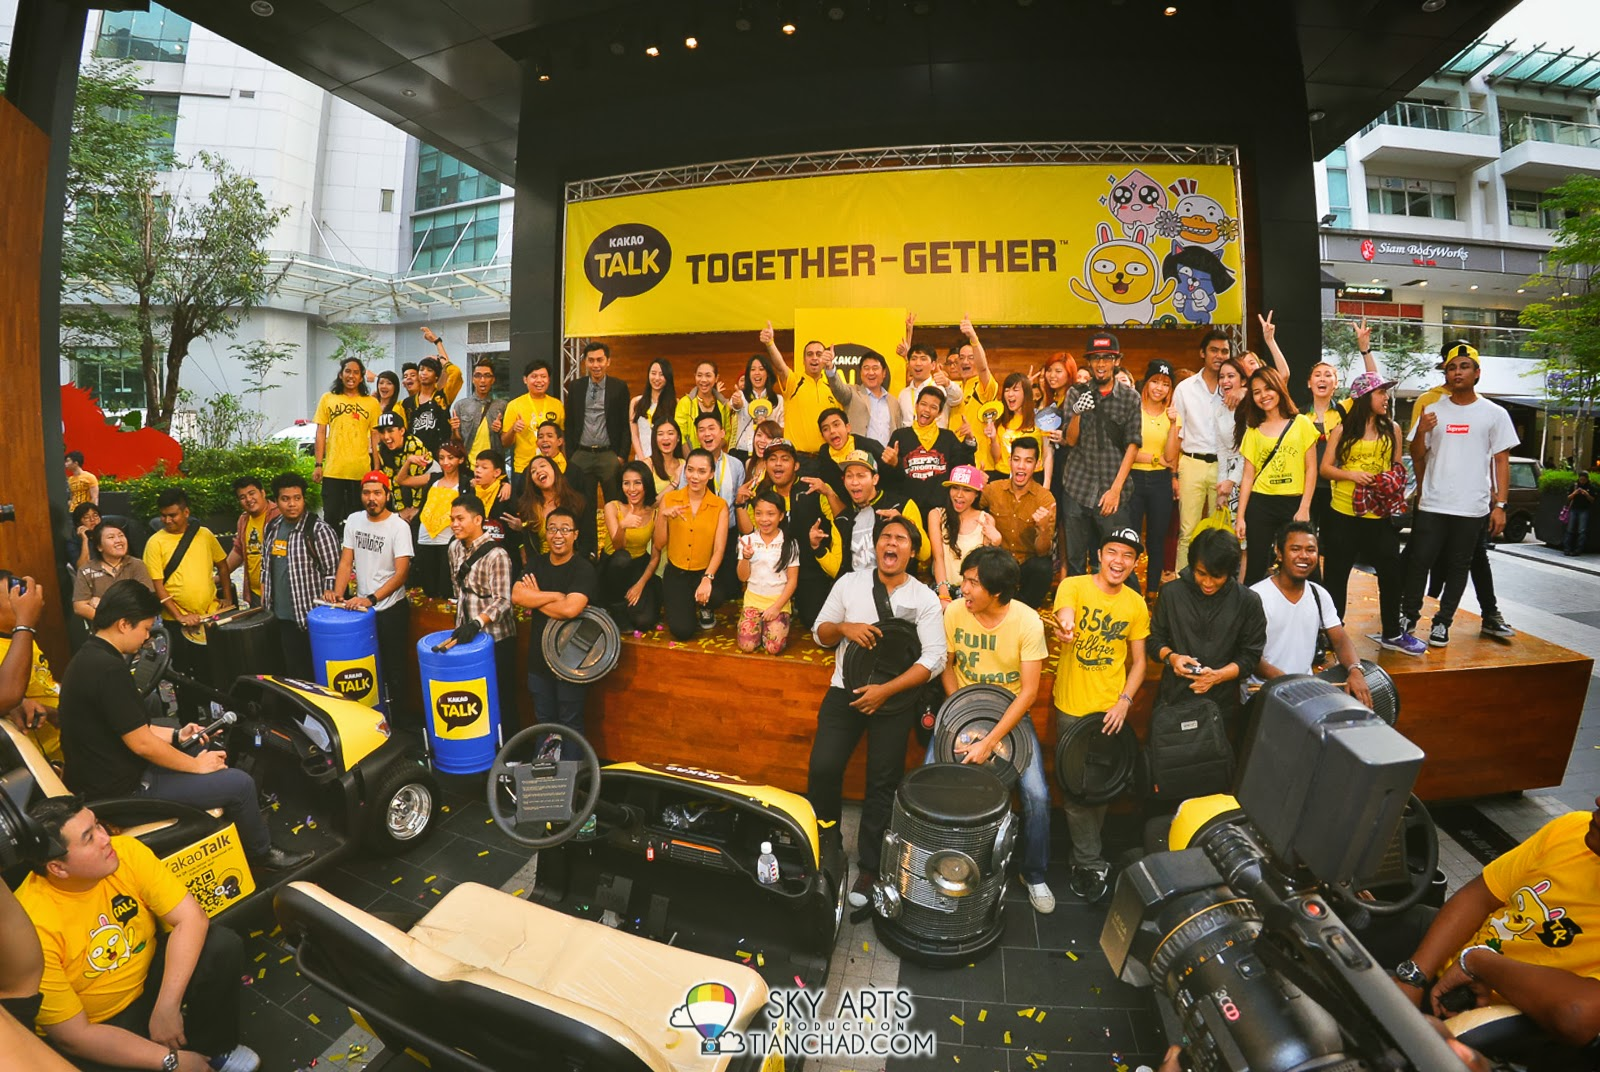 Glad to see KakaoTalk Malaysia get all the talented dancers and artists to get involved in this launch